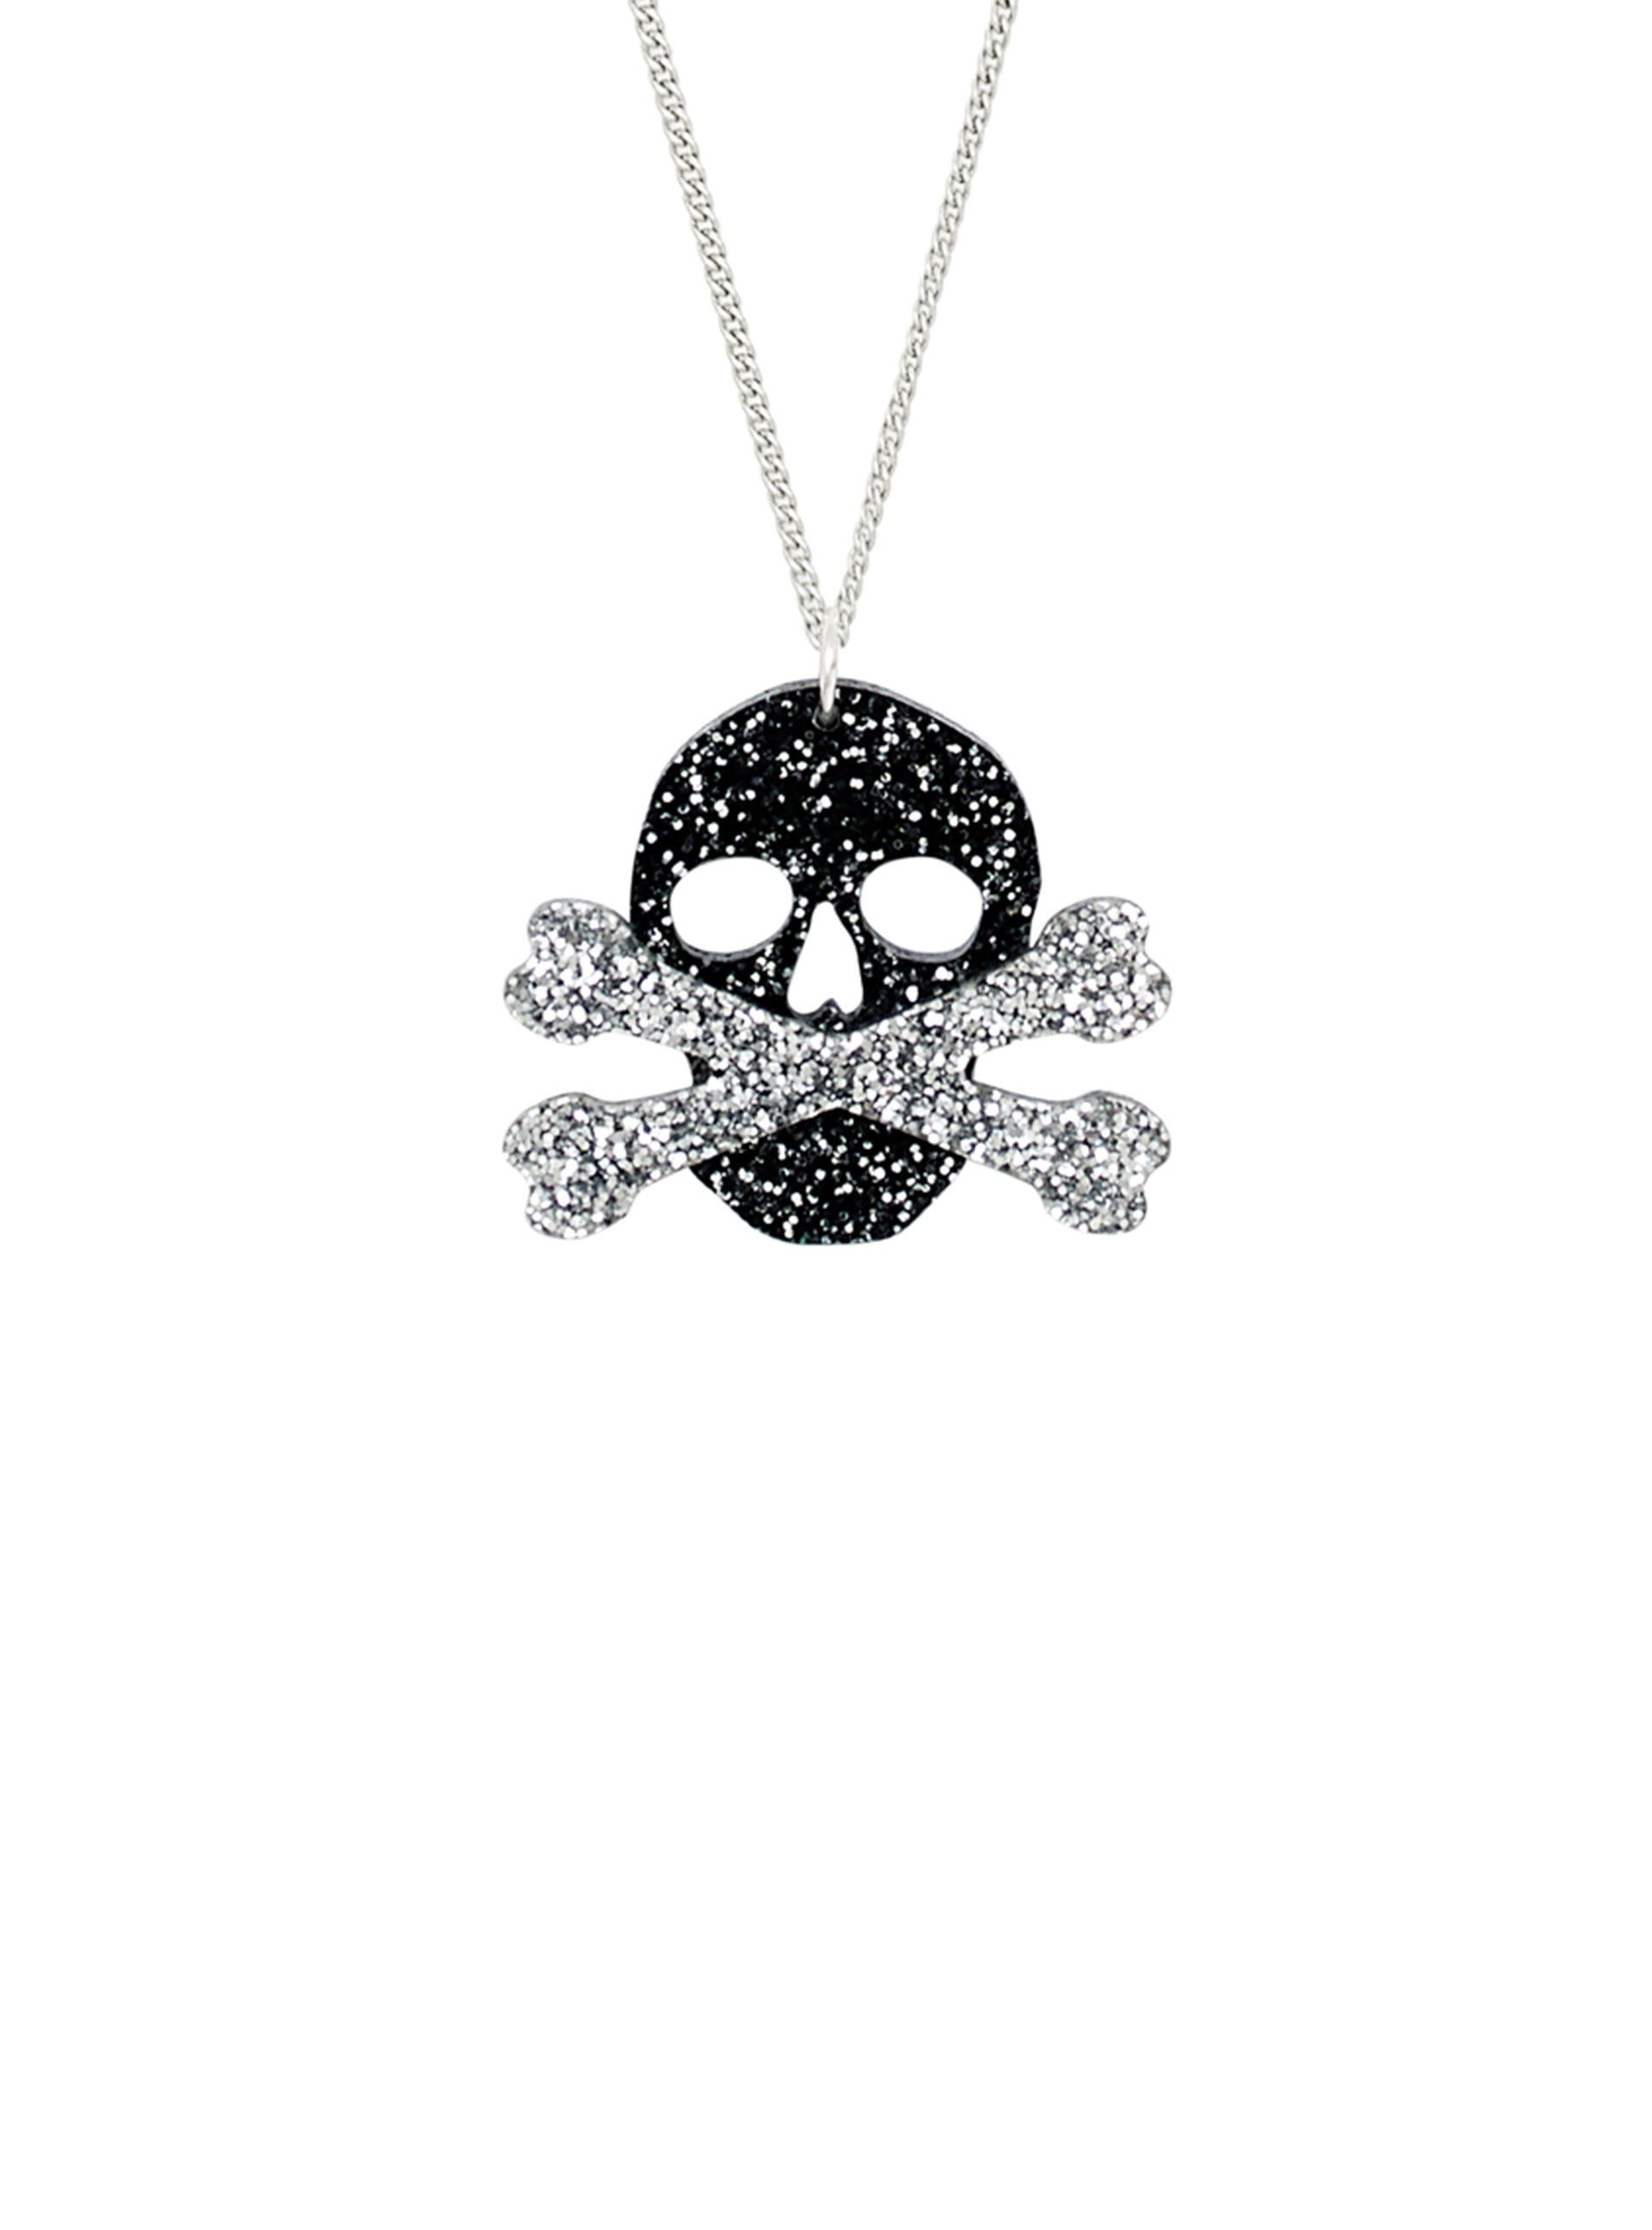 Skull and Crossbones Charm Necklace